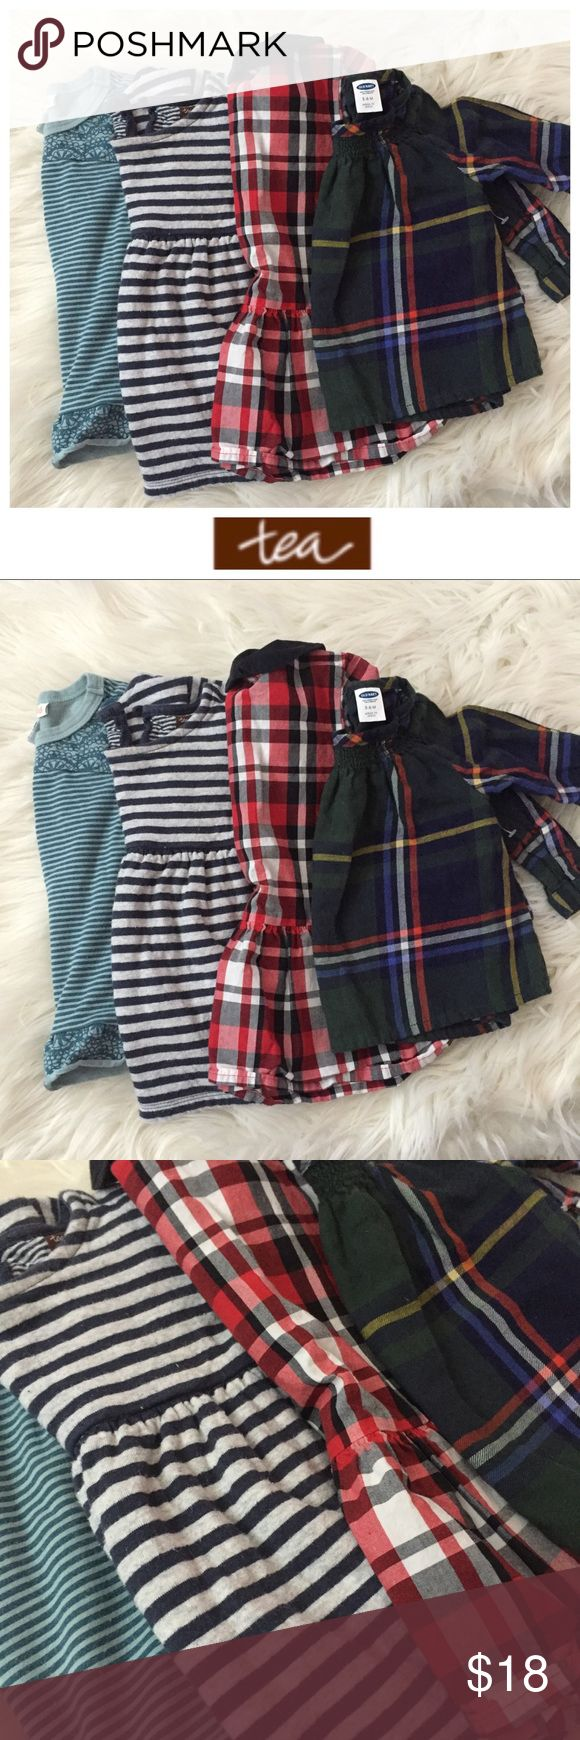 Baby Girl Holiday Bundle (Size 3-6m) Holiday bundle of 4 used dresses and tunics that are adorable with basic leggings! All size 3-6m.  🎀 Naartje Kids ruffle tunic; 🎀 Tea Collection striped tunic; 🎀 Baby Gap plaid with Peter Pan collar; 🎀 Old Navy classic big square plaid  No splitting bundles, please — my price accounts for you not liking an item or two I picked! Bundle to save even more — I have tons of kids clothes and my closet's meant to be bundled! Hope you enjoy ♥️🎀 Tea…